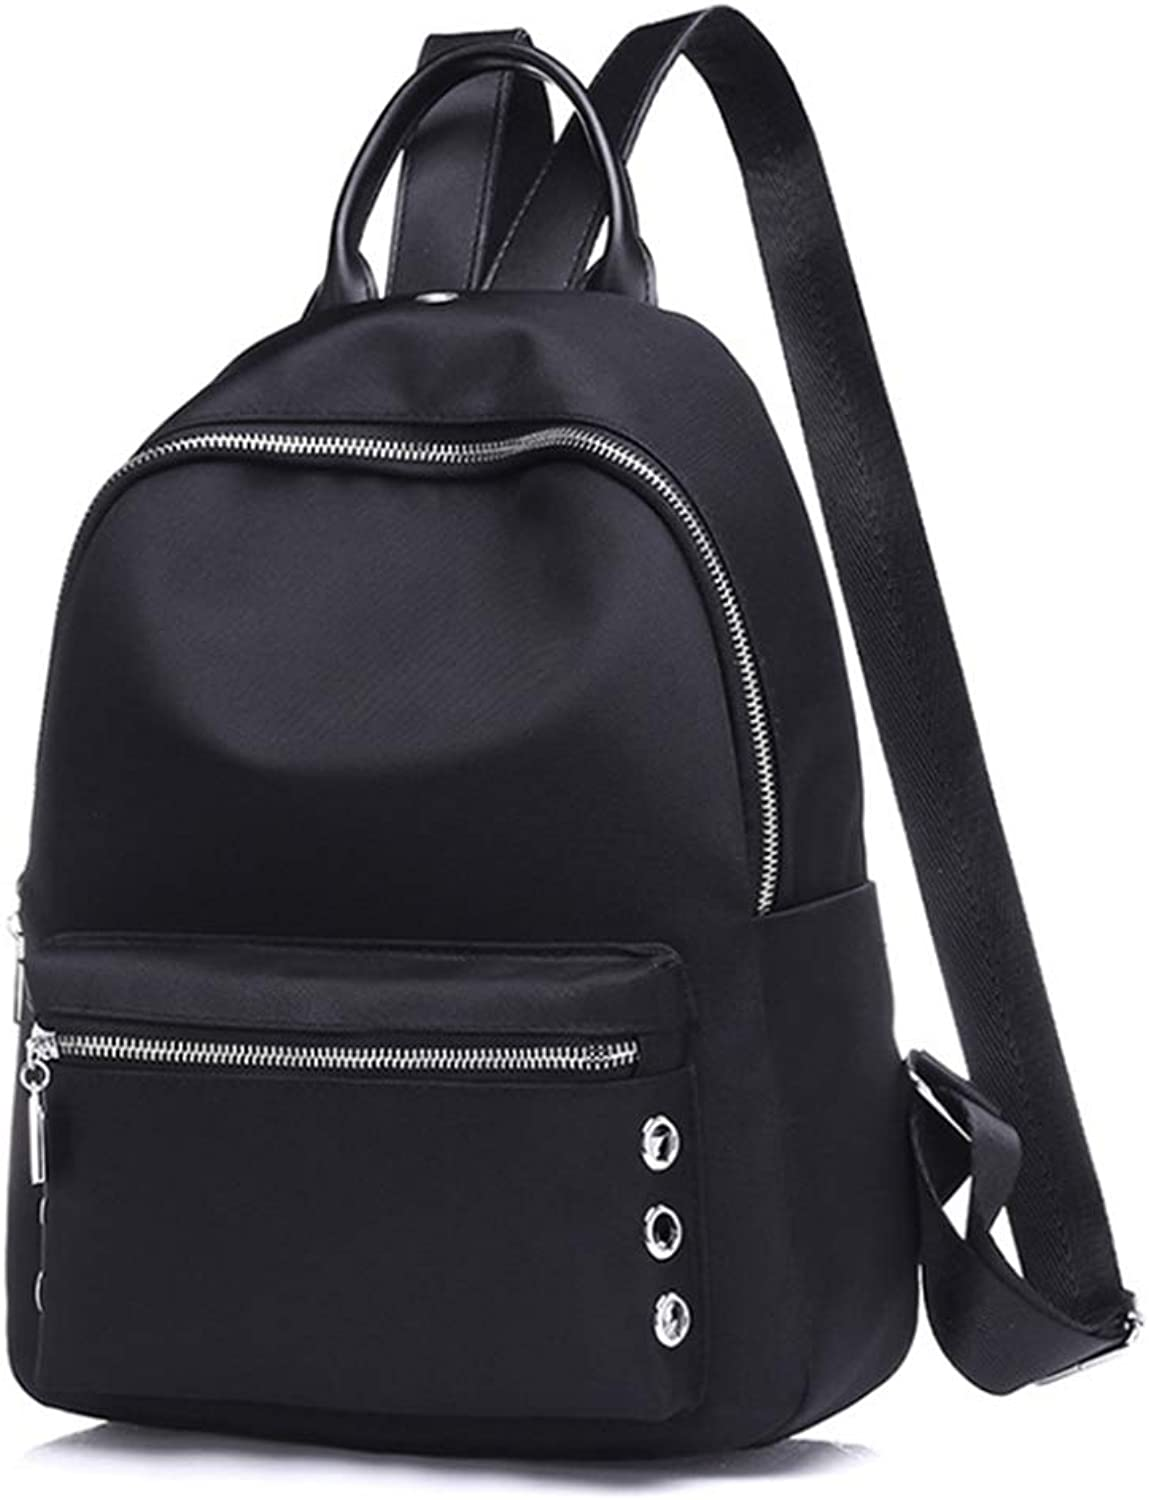 SS Studded Backpack Female Farbe Farbe Farbe Strip Backpack College Style Fashion Travel Bag School BagA B07KN3R767  Elegante und stabile Verpackung 4d8b09